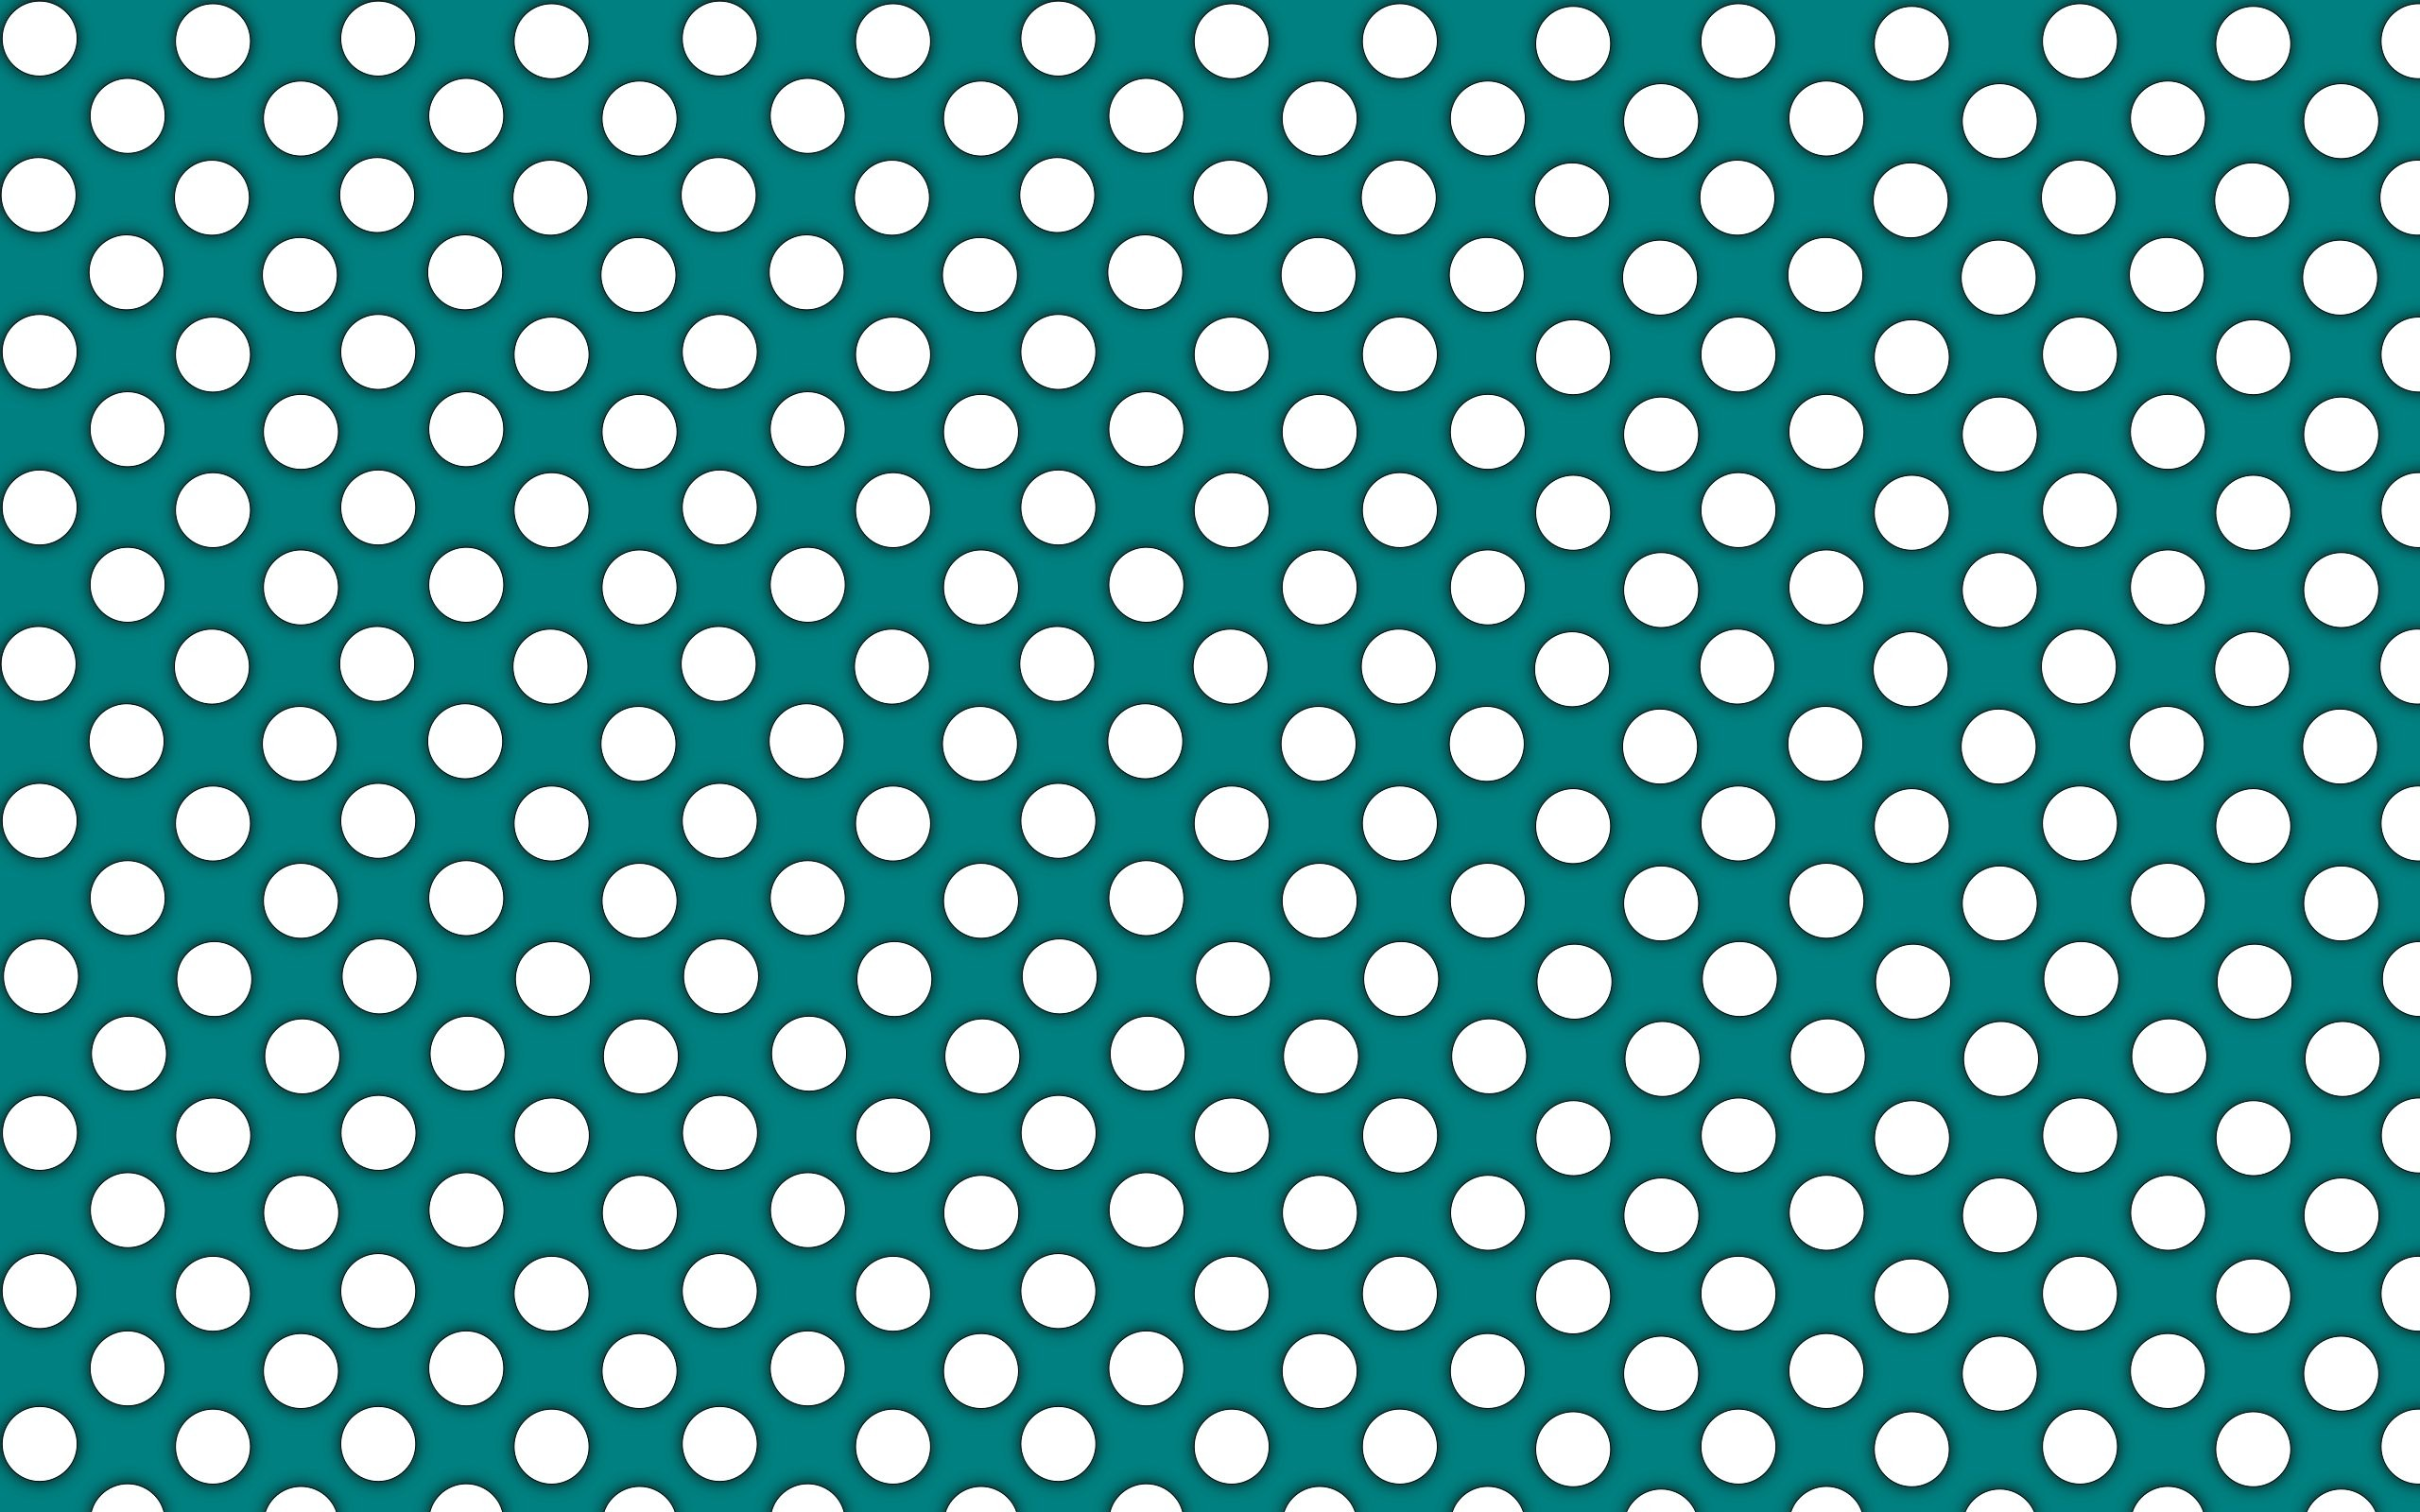 Black and White Polka Dot Wallpaper: .